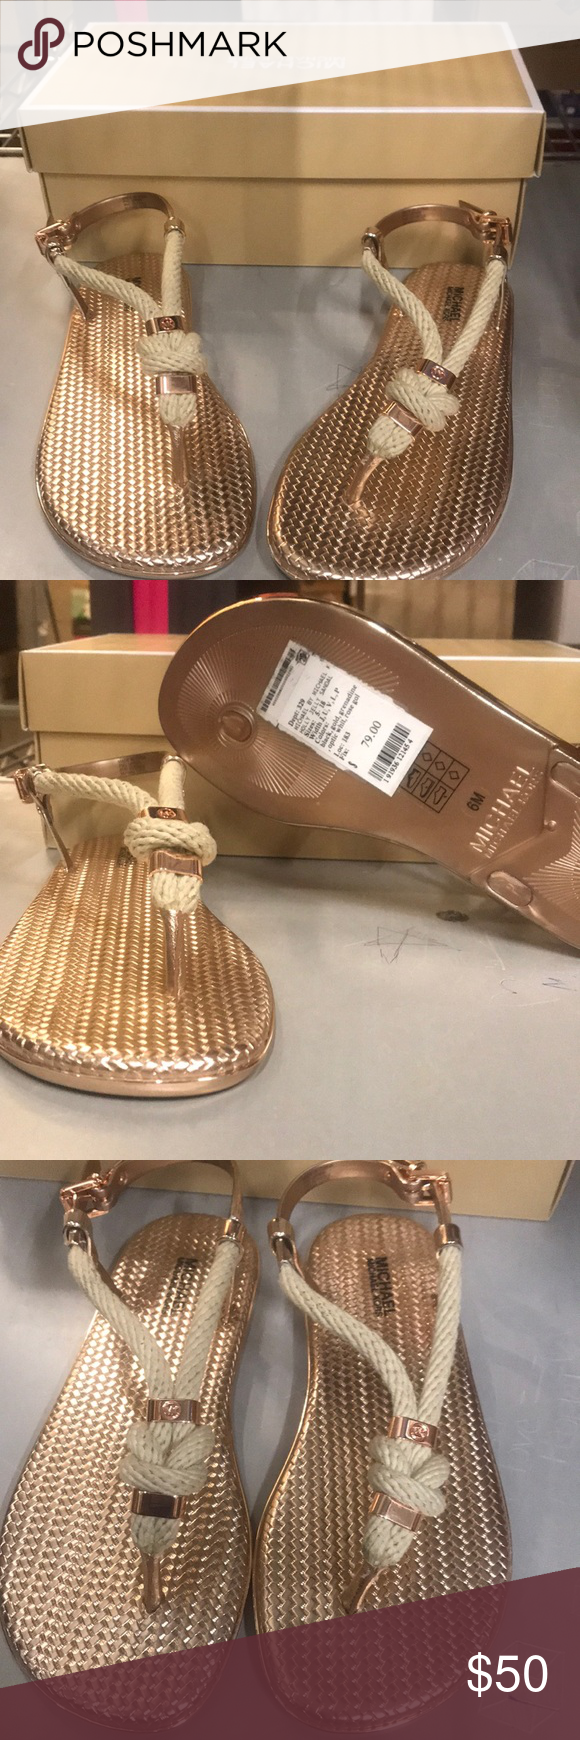 56a6e9093bdd Michael Kors Rose Gold Holly Jelly Sandal Rose gold sandals with a rope  design. Brand